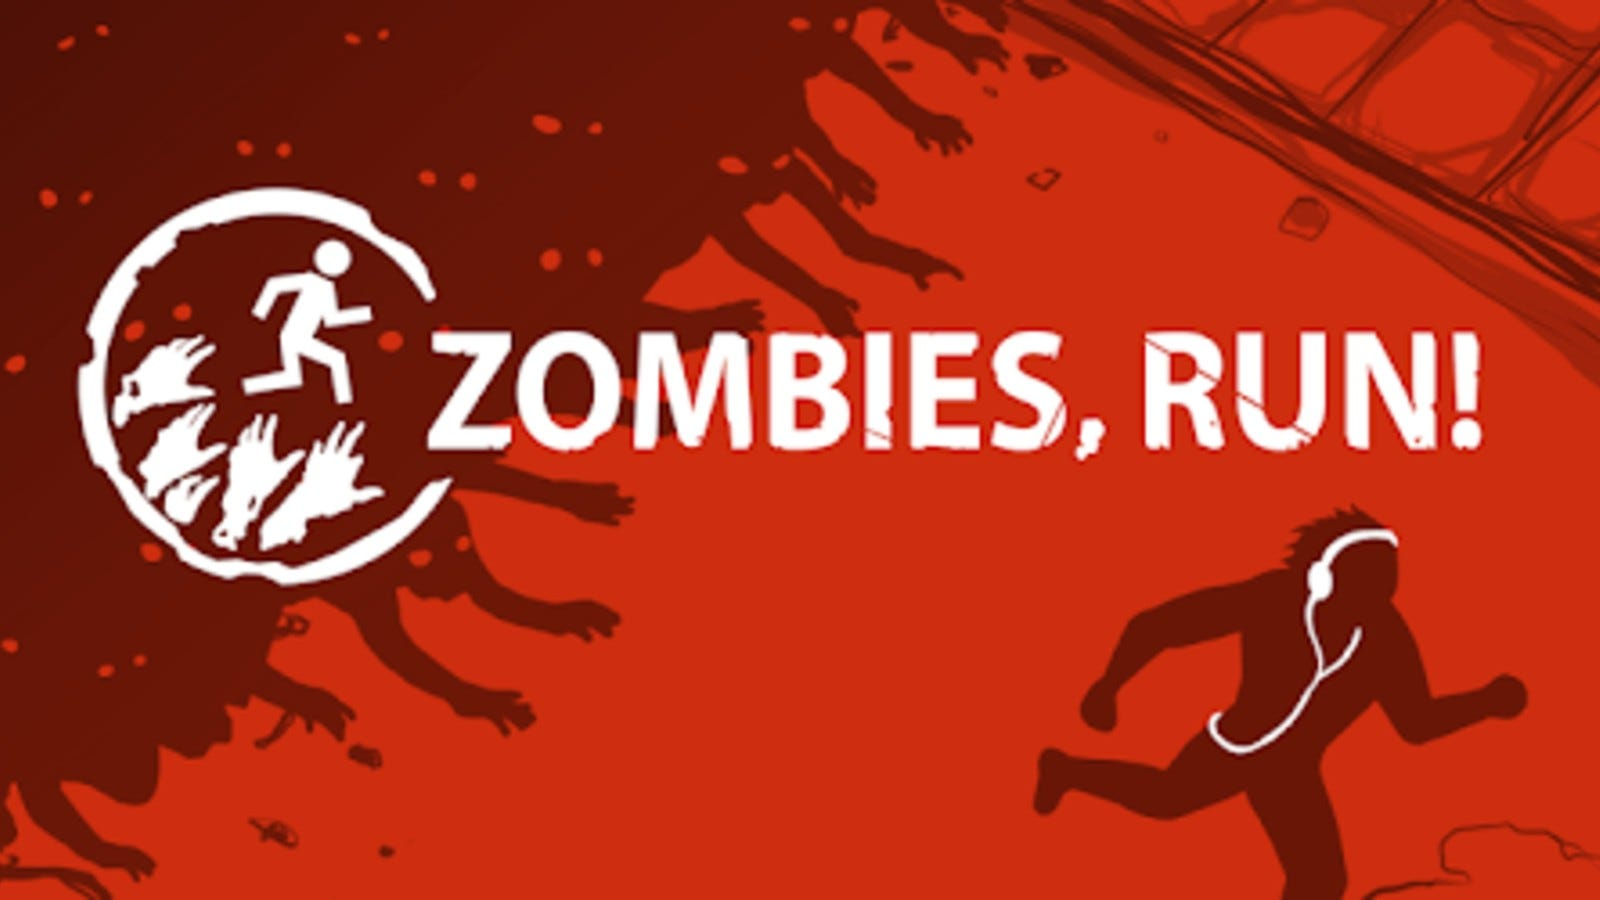 graphic of someone jogging from zombies